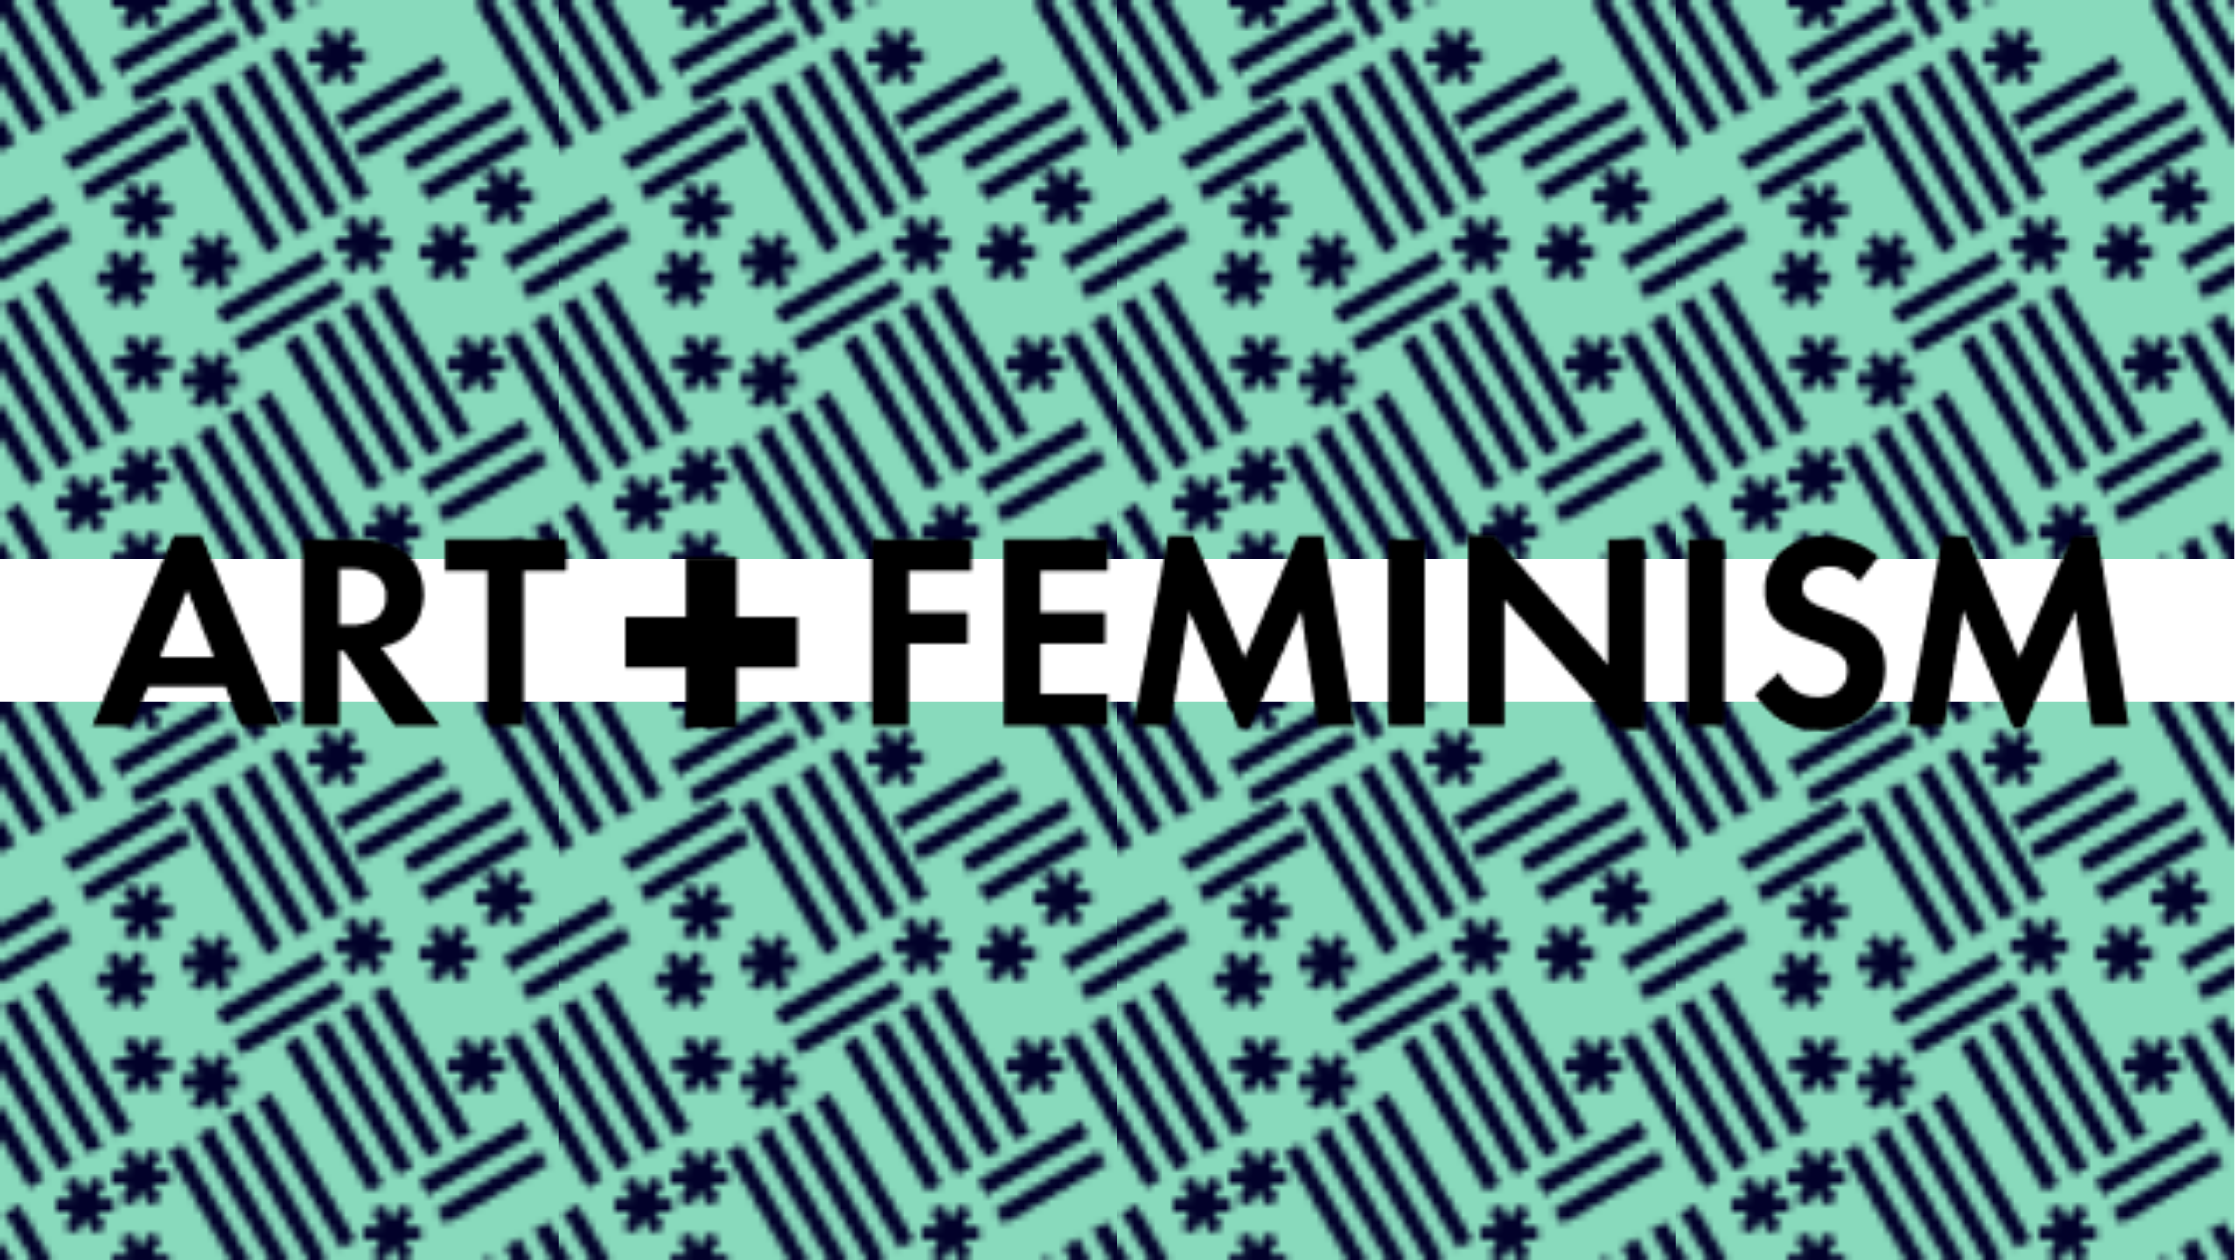 Art+Feminism Logo on top of a green patterned background